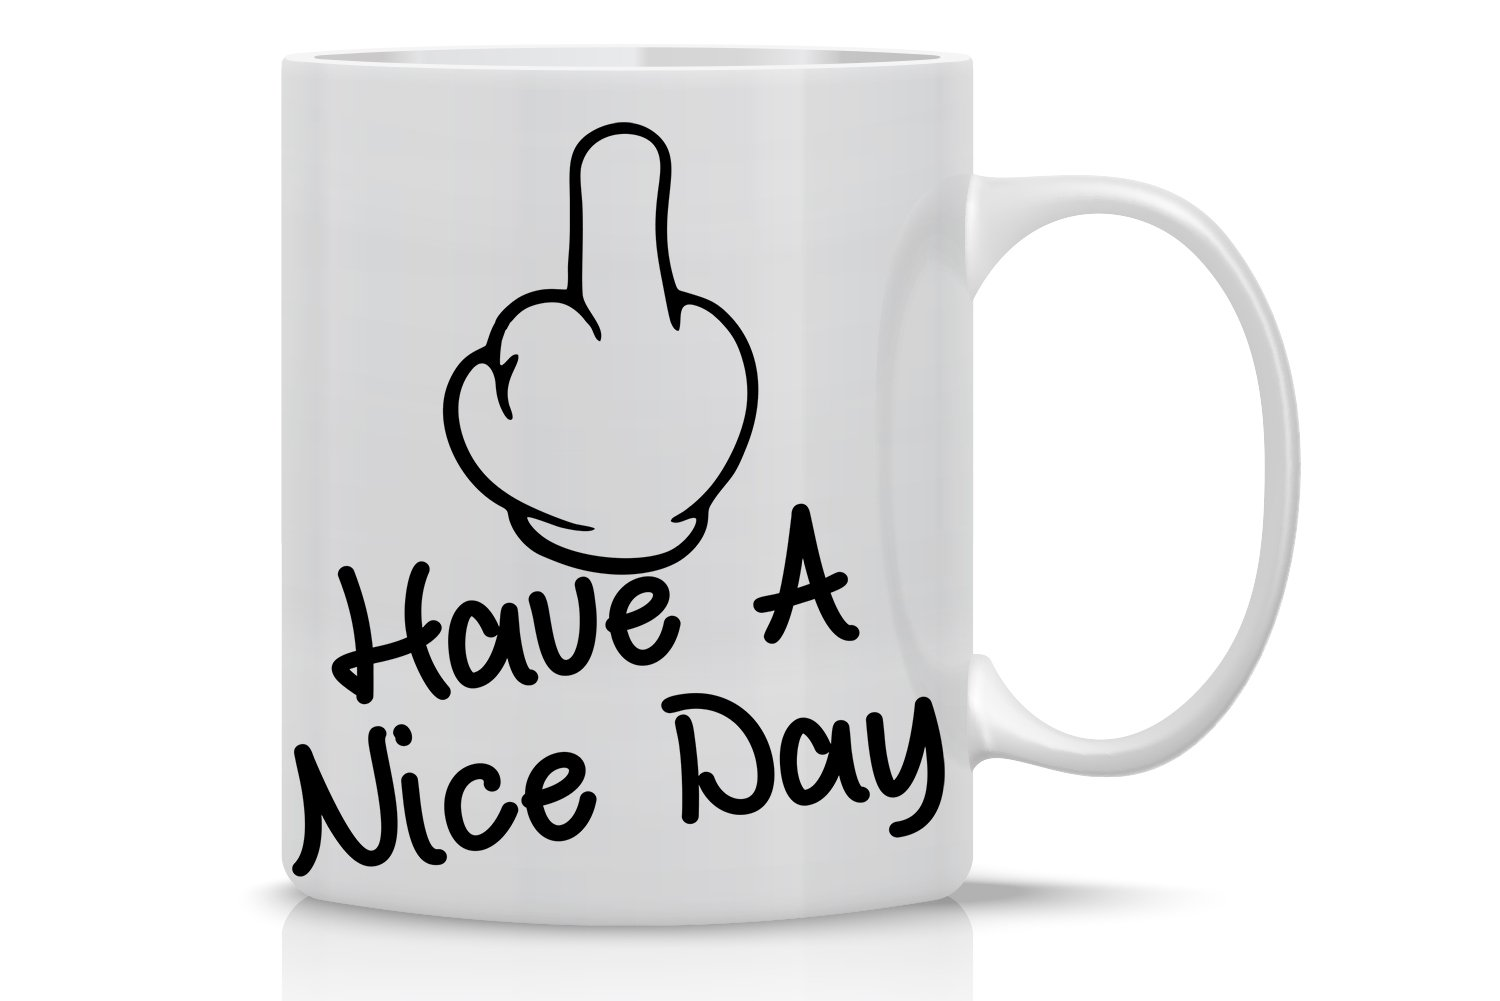 Boyfriend or Girlfriend Have a Nice Day! Middle Finger Perfect Gag Gift for Friend or Sibling- Crazy Bros Mugs Funny Sarcasm Mug Boss Coworker 11OZ Coffee Mug